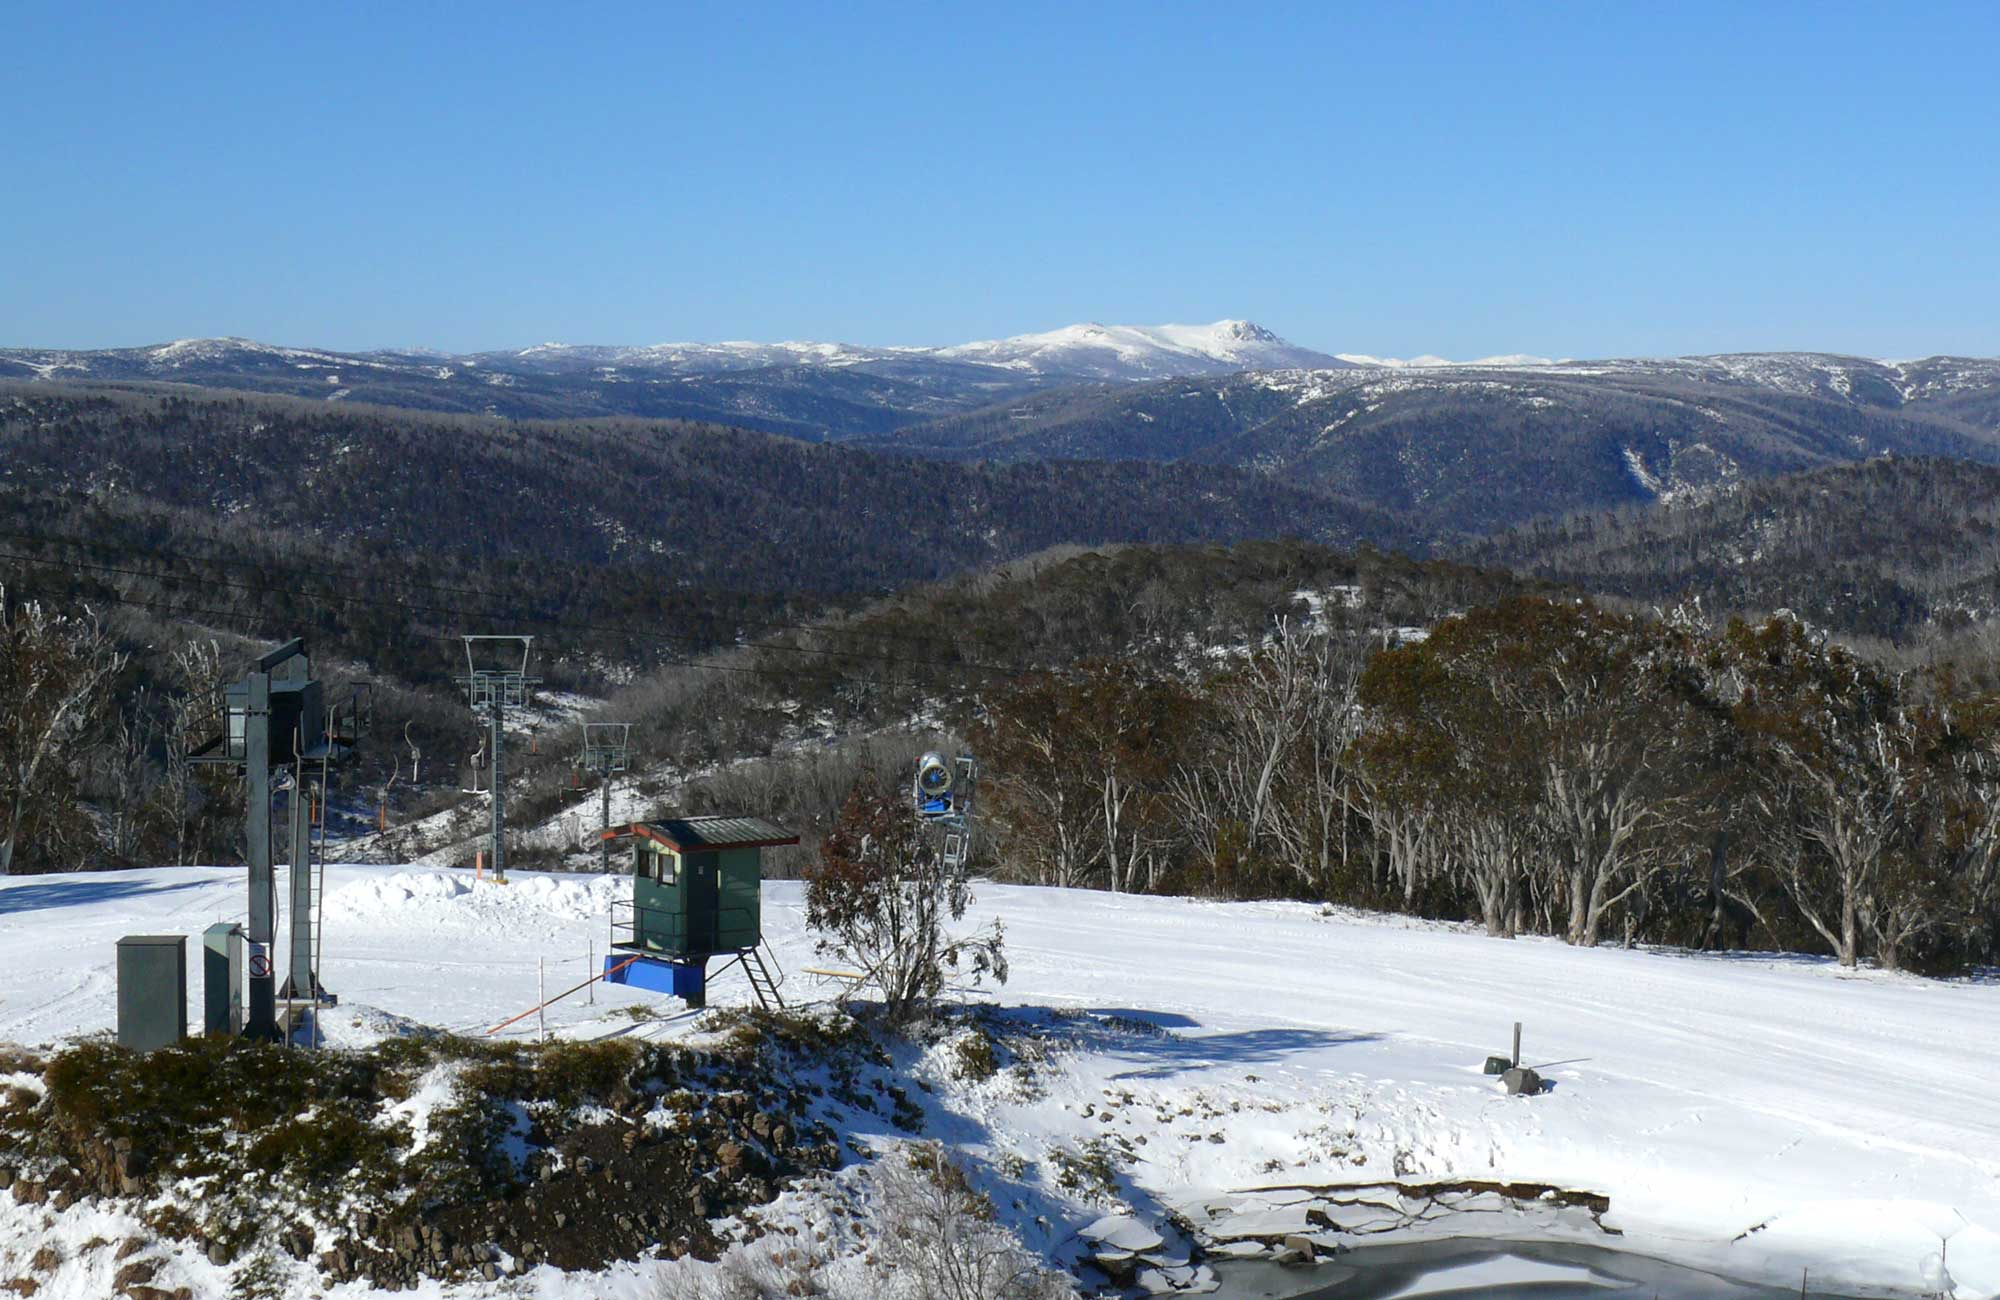 Mount Selwyn Snowfields, Kosciuszko National Park. Photo: K Heatley/NSW Government